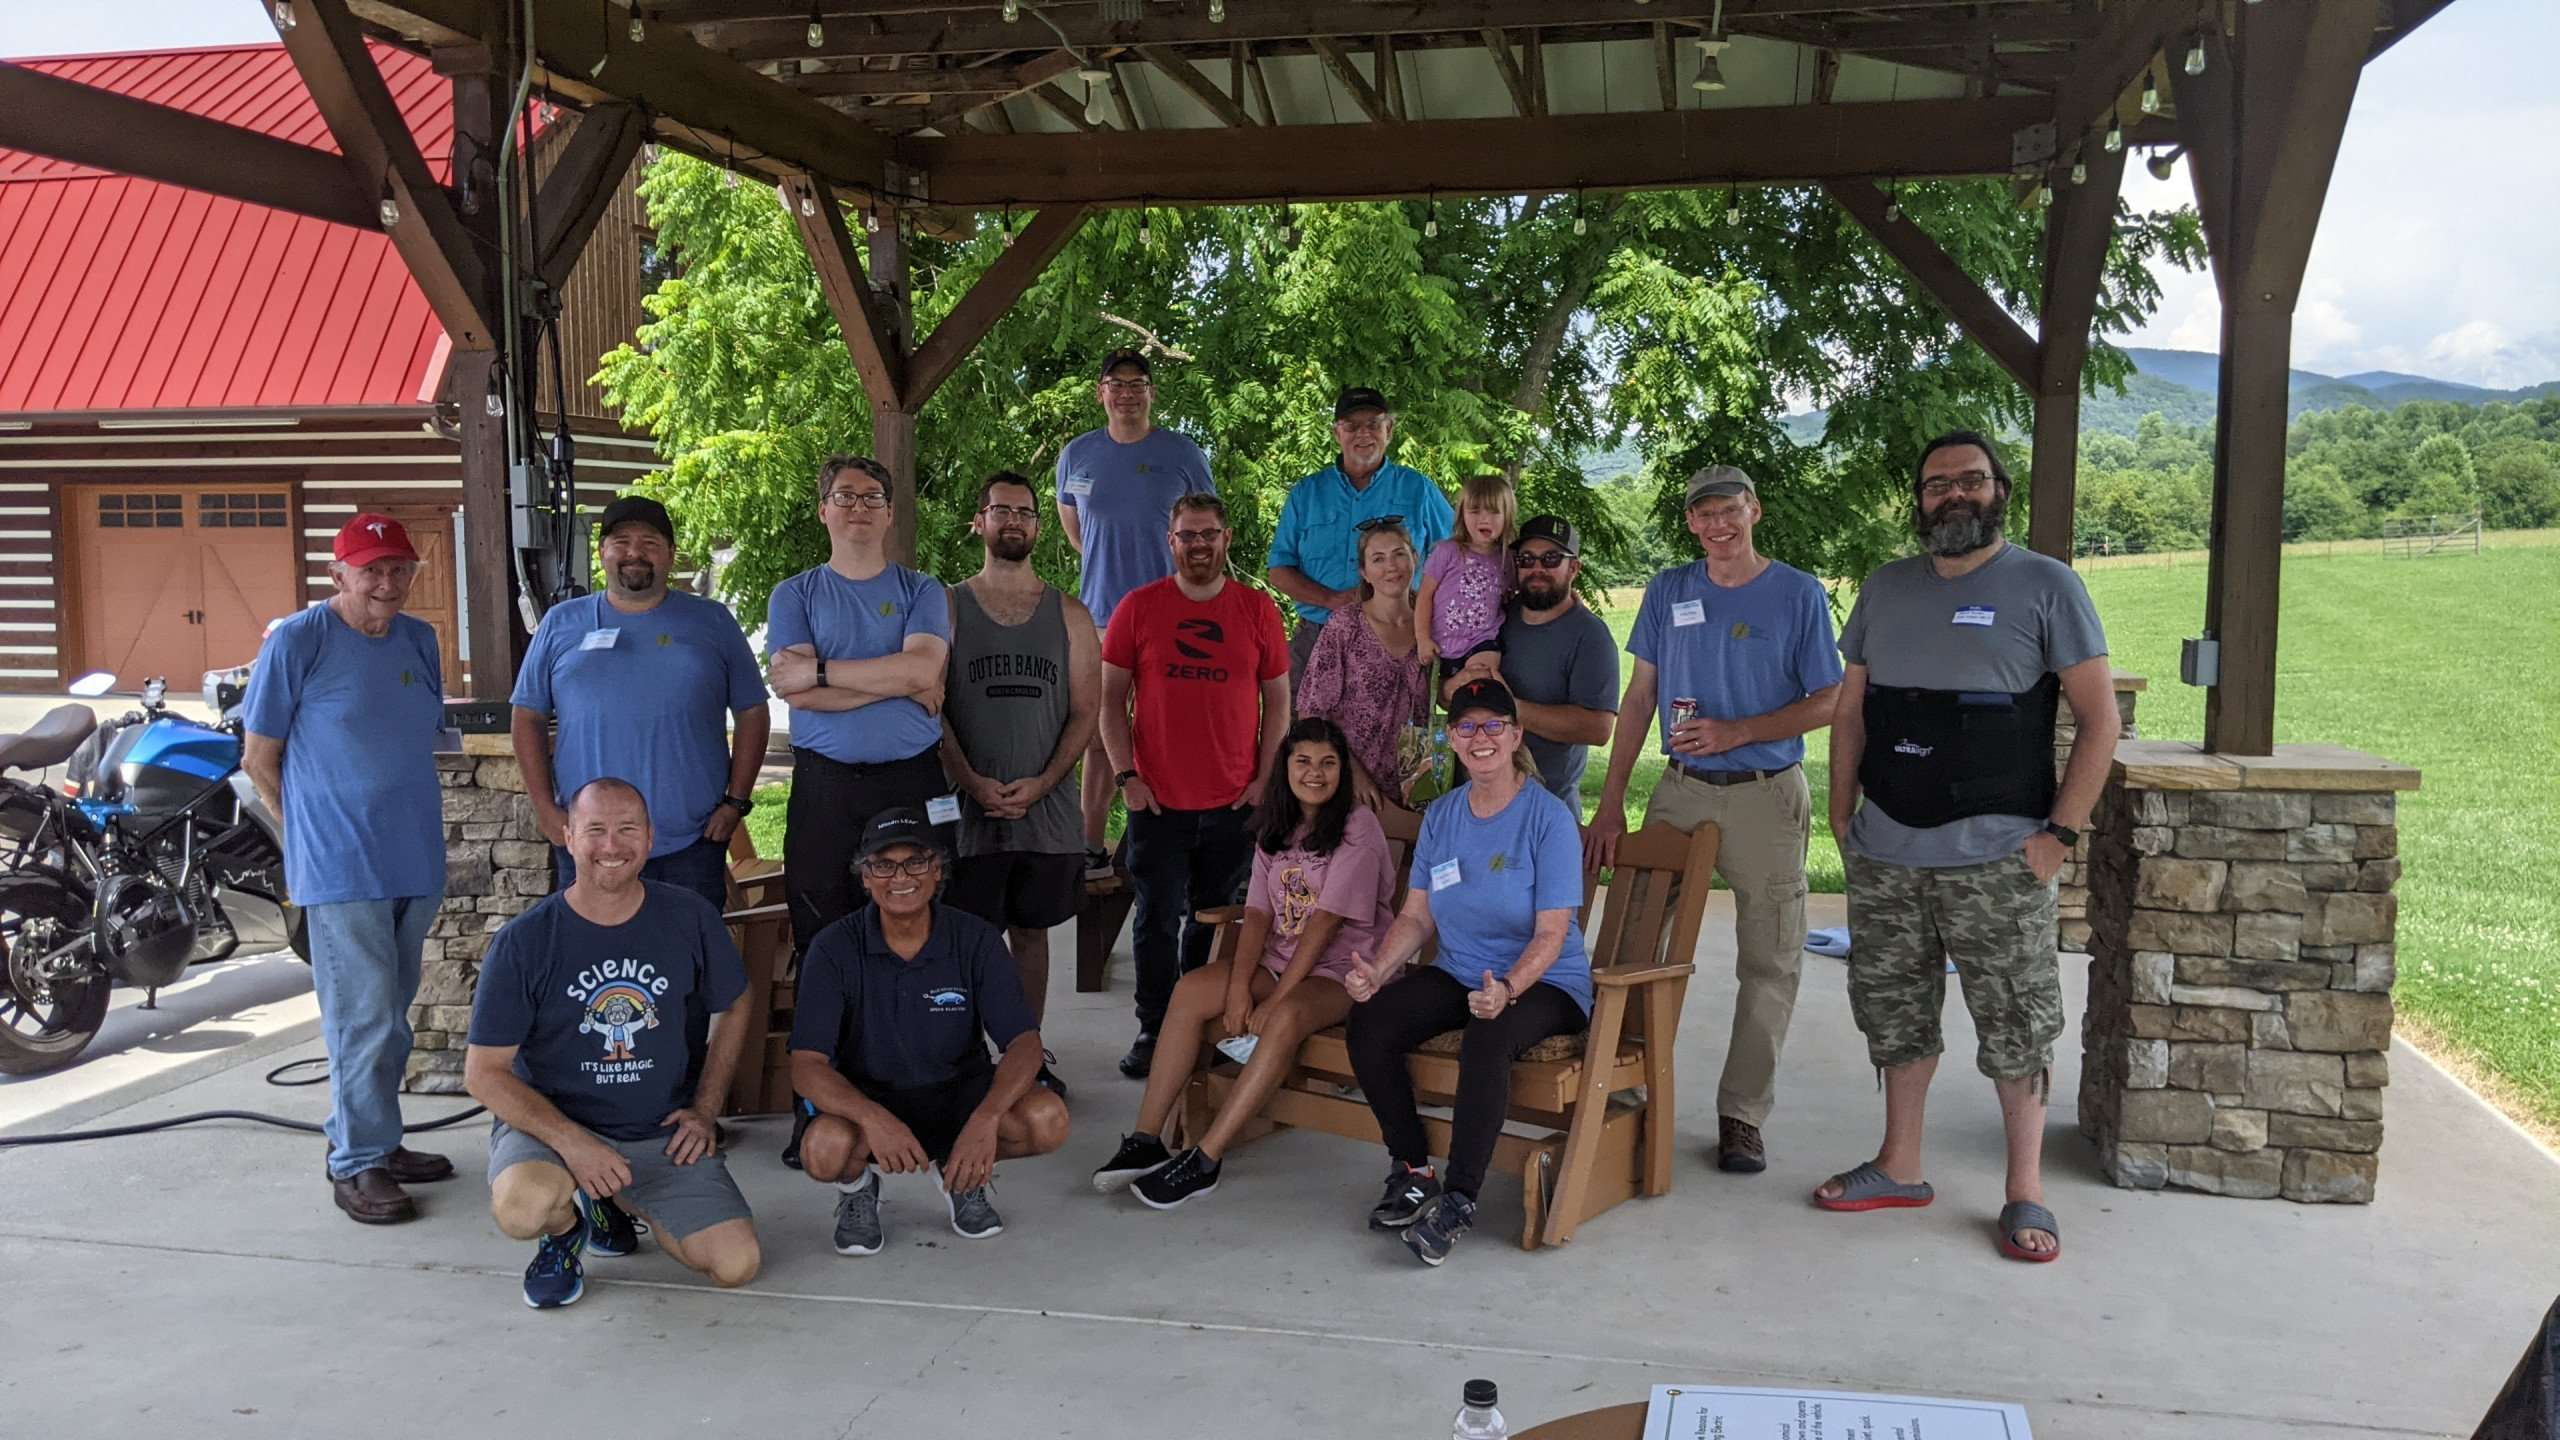 A group of about 13 electric vehicle enthusiasts stand under a wood pavilion smiling for a posed photo.